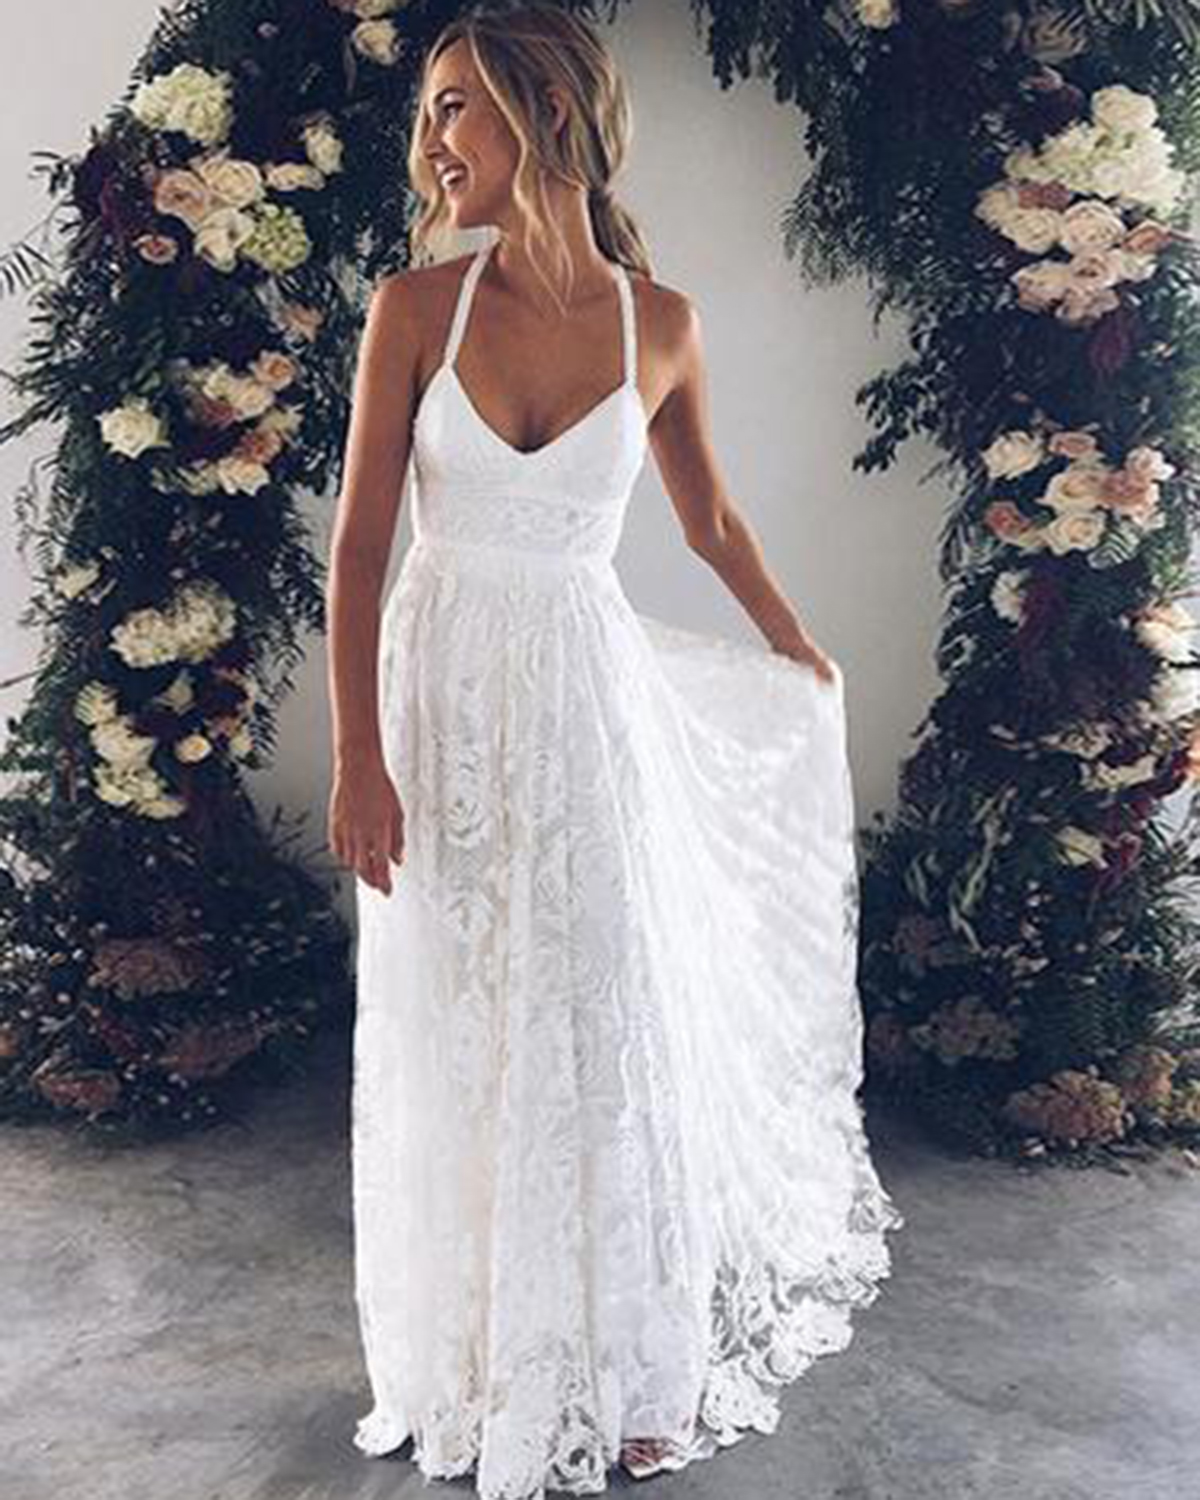 White Flower Lace V Neck Long Summer Beach Prom Dress